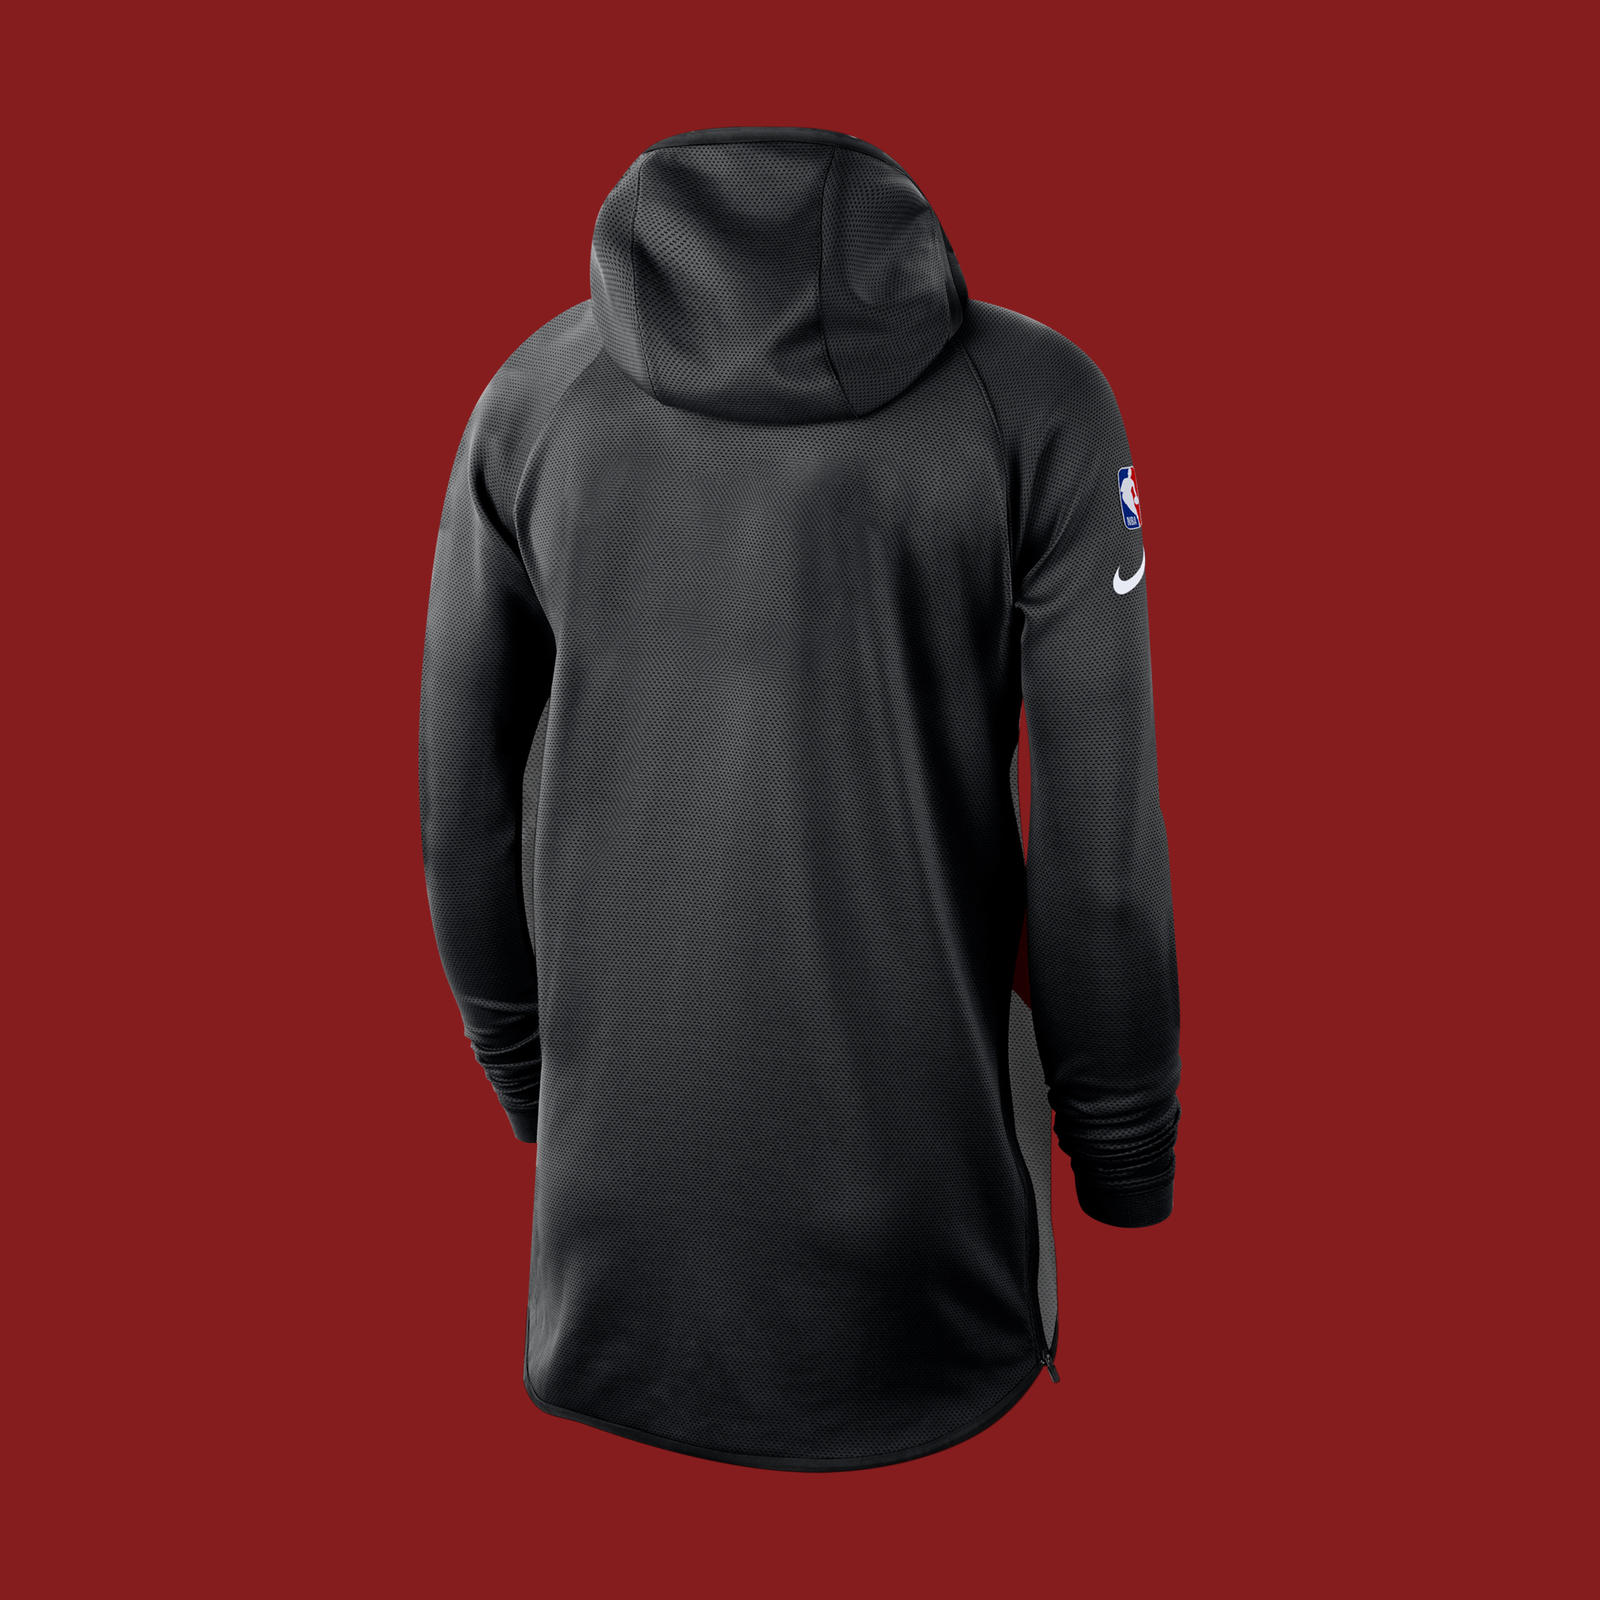 Nike NBA Earned Edition Showtime Hoodies 2019-20 Official Images 15